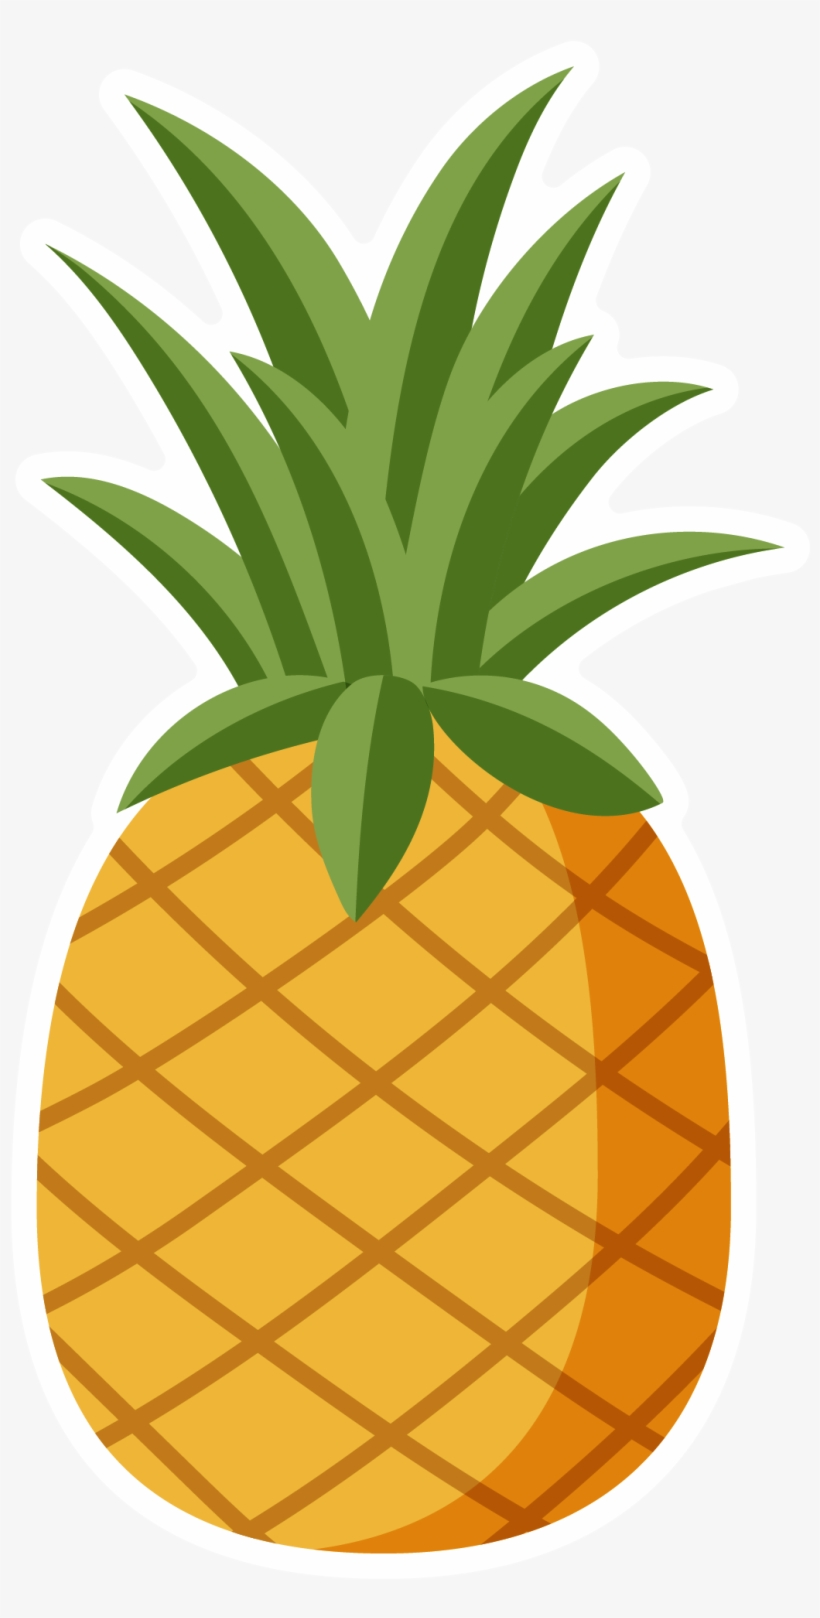 Stand tall clipart png black and white Jpg Royalty Free Library Mango Clipart Pineaaple - Pineapple ... png black and white